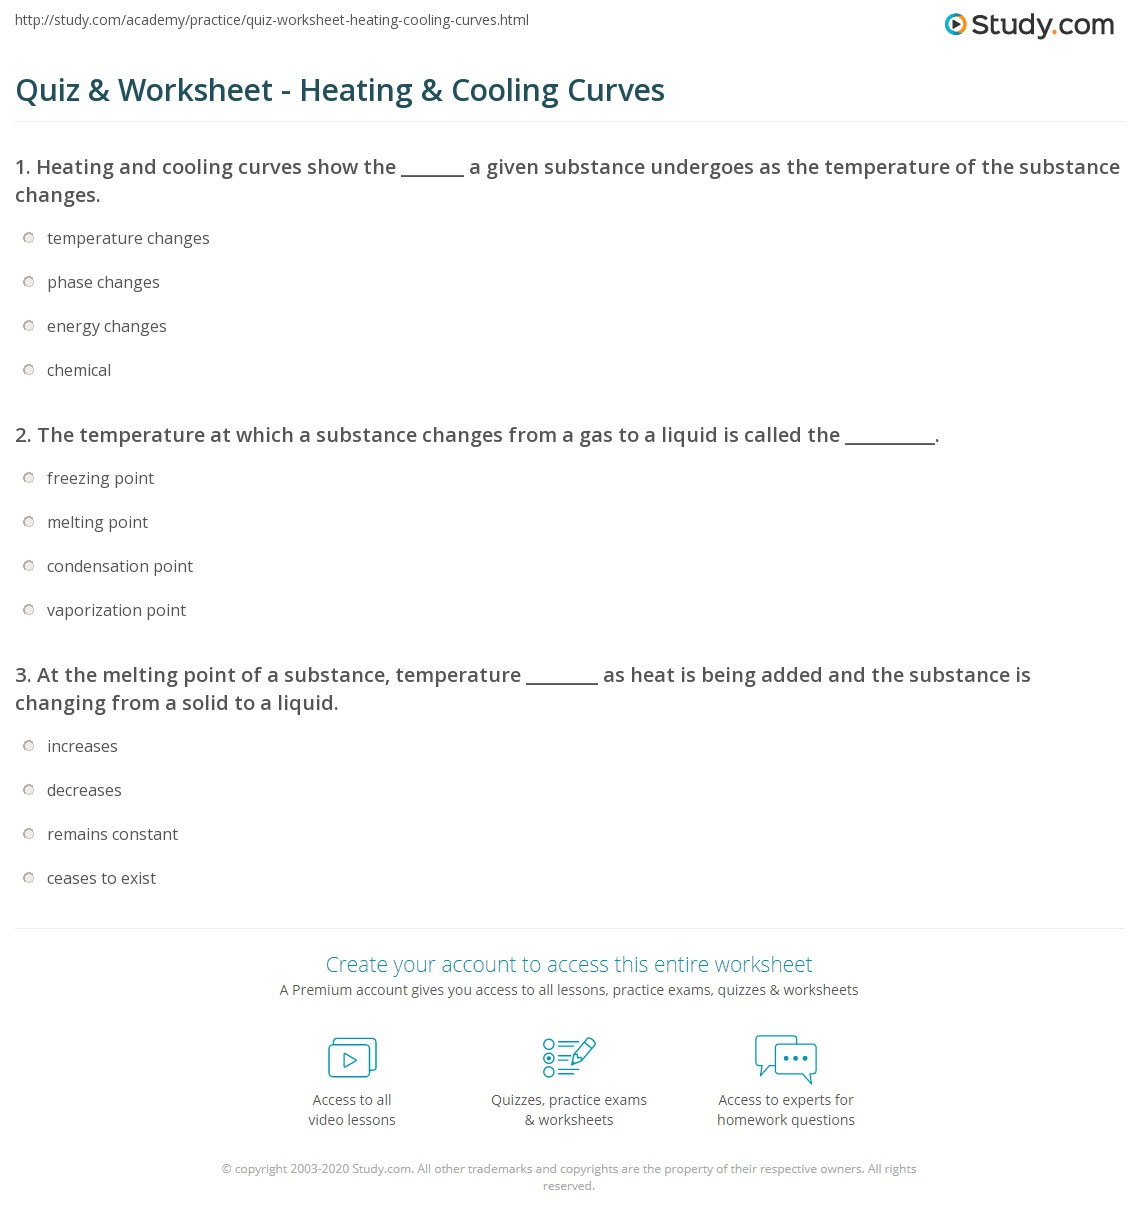 quiz worksheet heating cooling curves. Black Bedroom Furniture Sets. Home Design Ideas